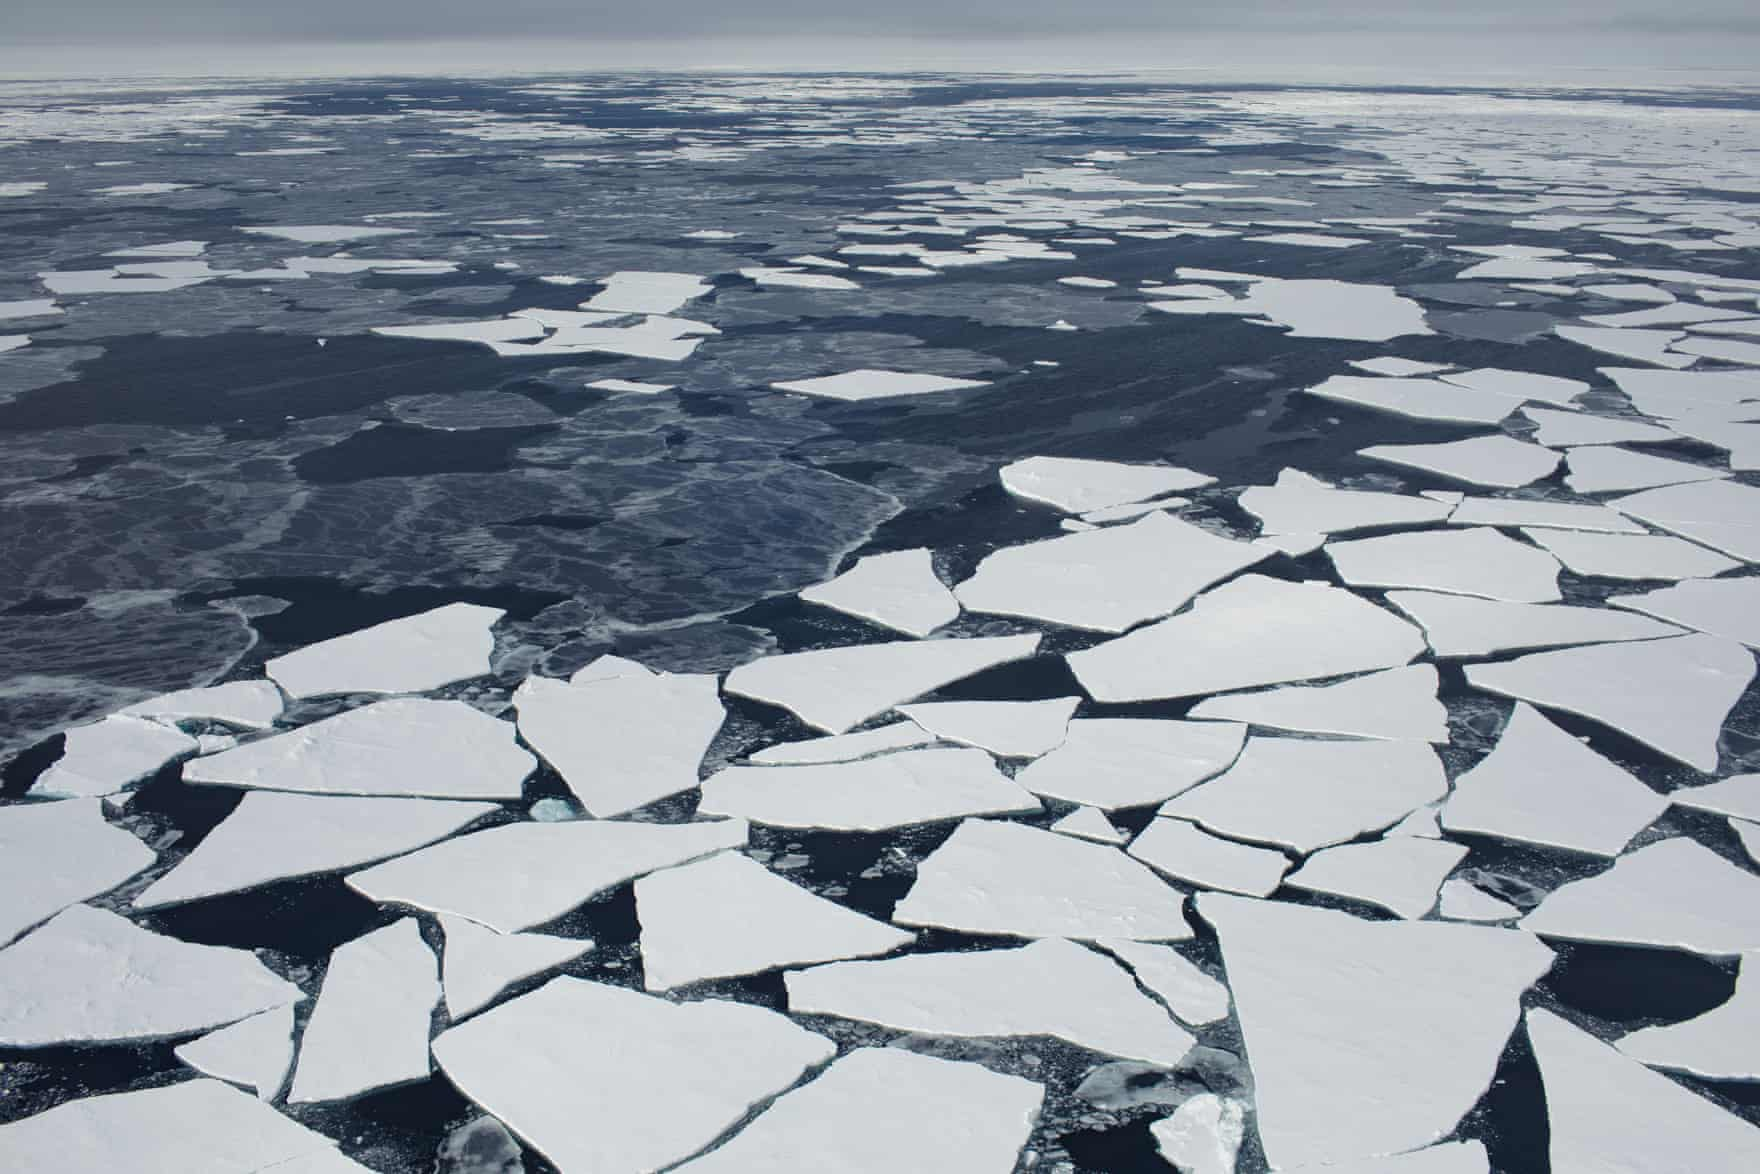 Floating ice floes along one edge of Fram Strait. Photograph: Denis Sinyakov/Greenpeace